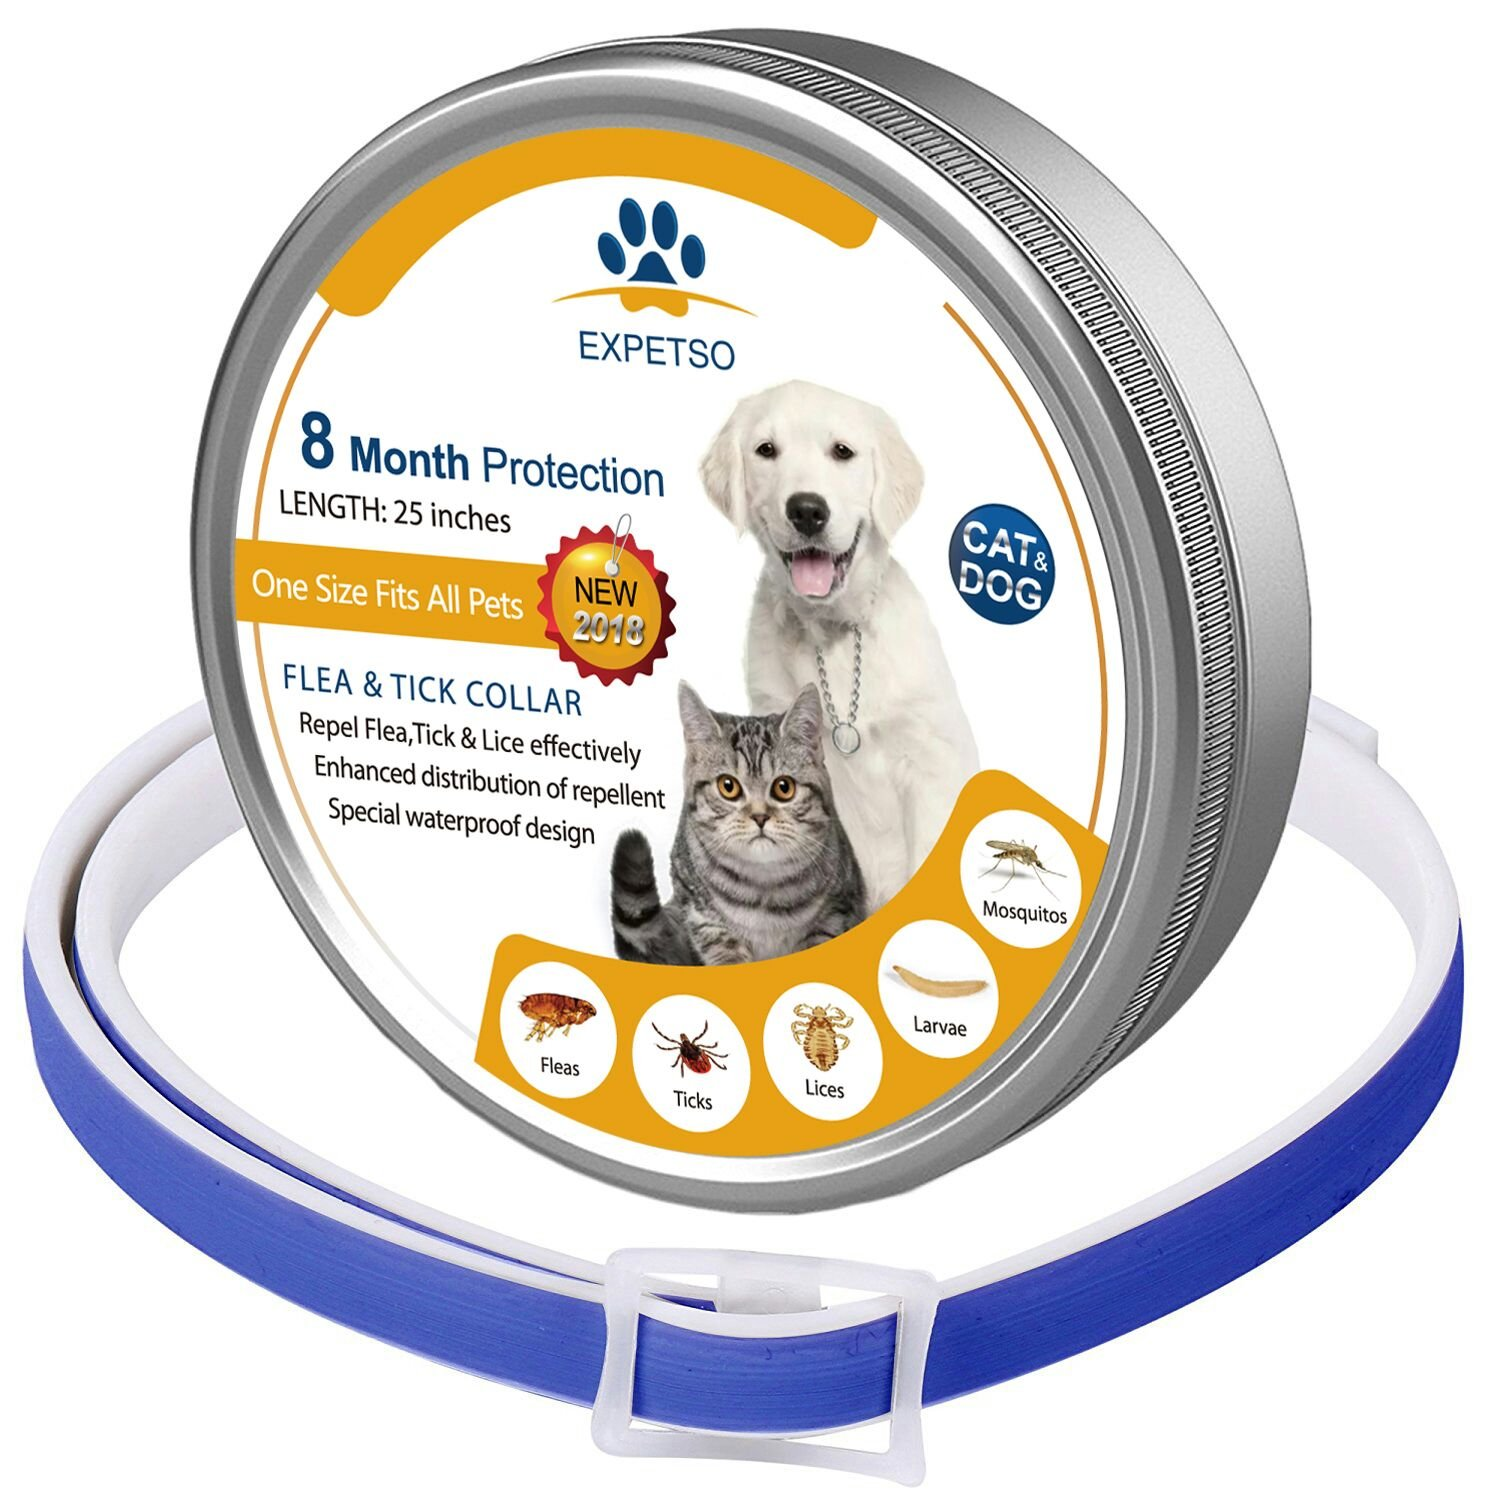 EXPETSO Flea and Tick collar for Dog Cat 8 Months Effective Protection adjustable length 60cm for Small Medium Large Pets BLUE